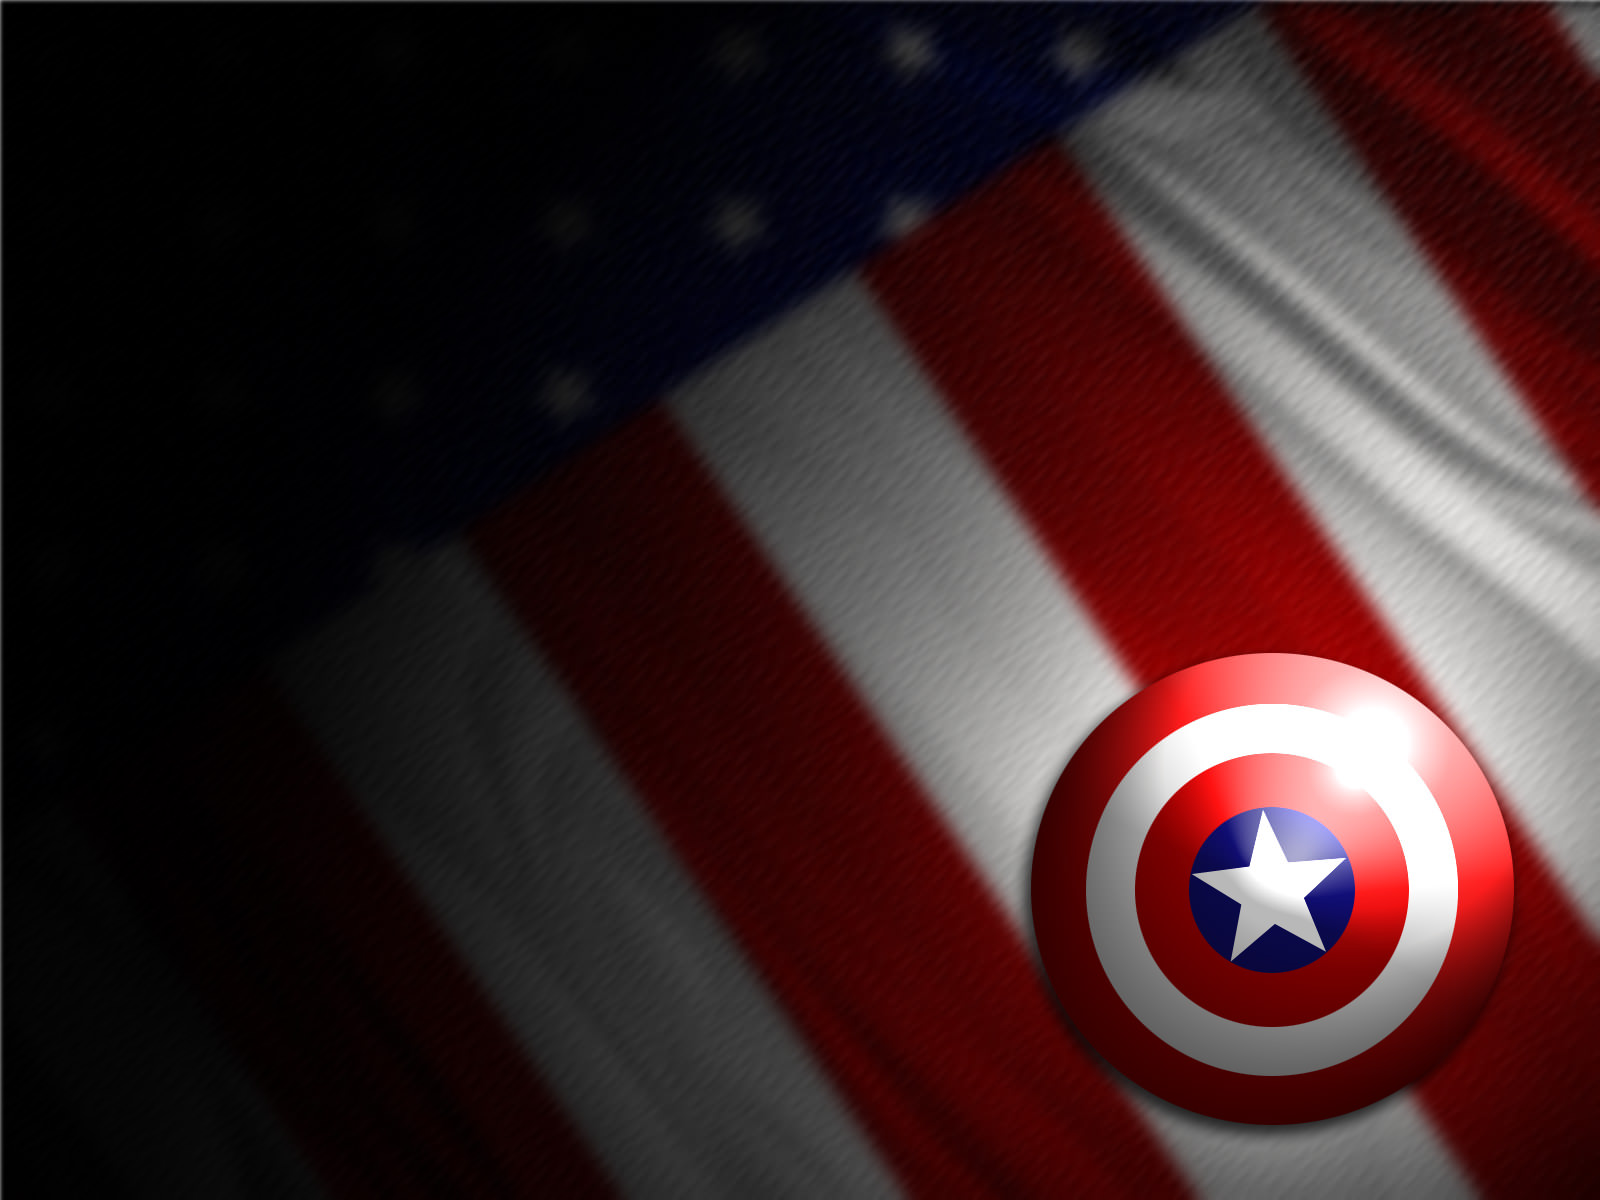 Captain America Symbol Wallpaper 1600x1200.